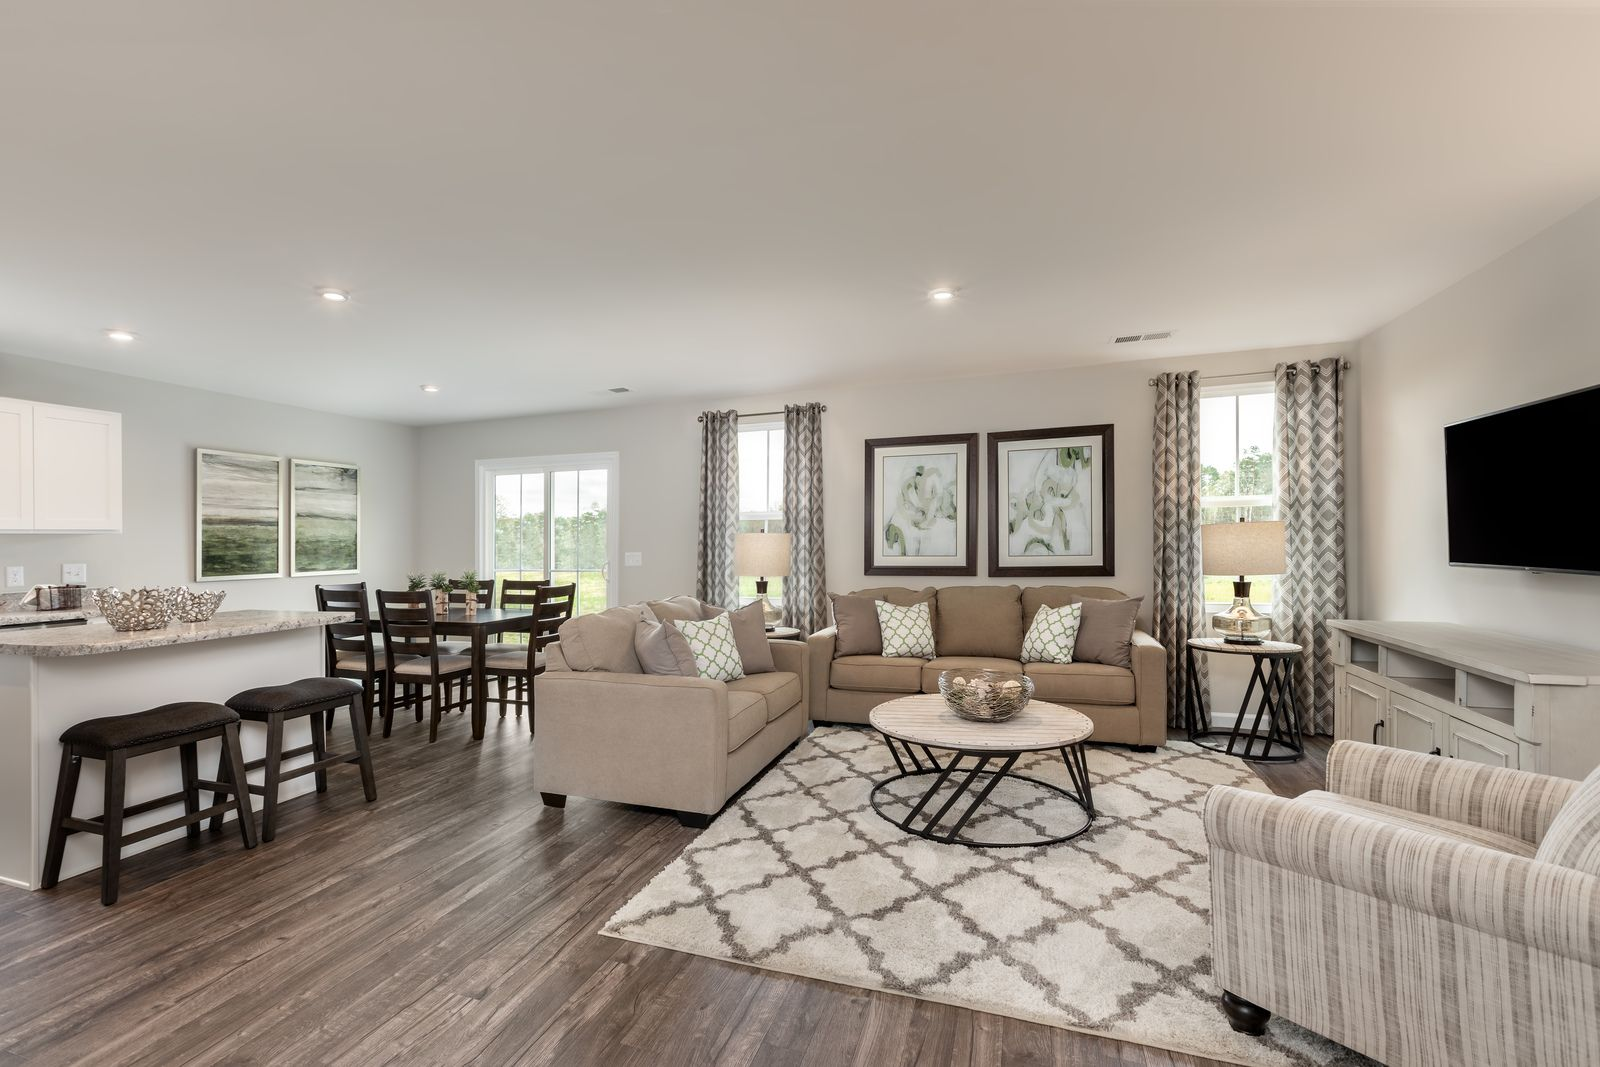 Living Area featured in the Spruce w/ Included Basement By Ryan Homes in Cincinnati, OH